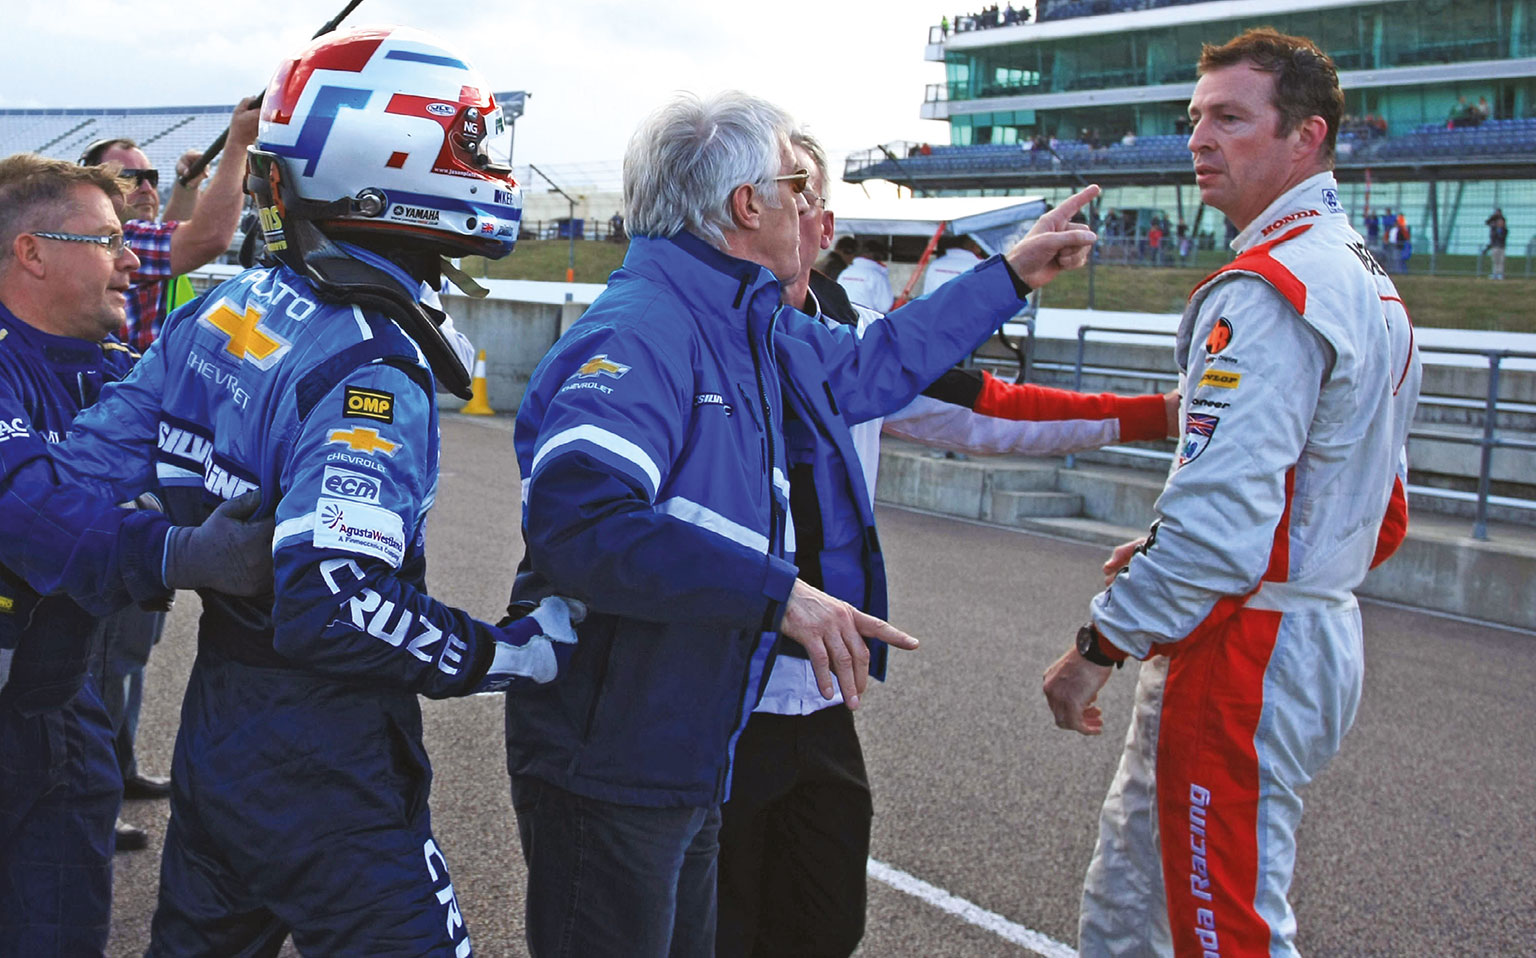 Fisticuffs, or a bit of showmanship handbags? Plato and Neal come to blows at Rockingham